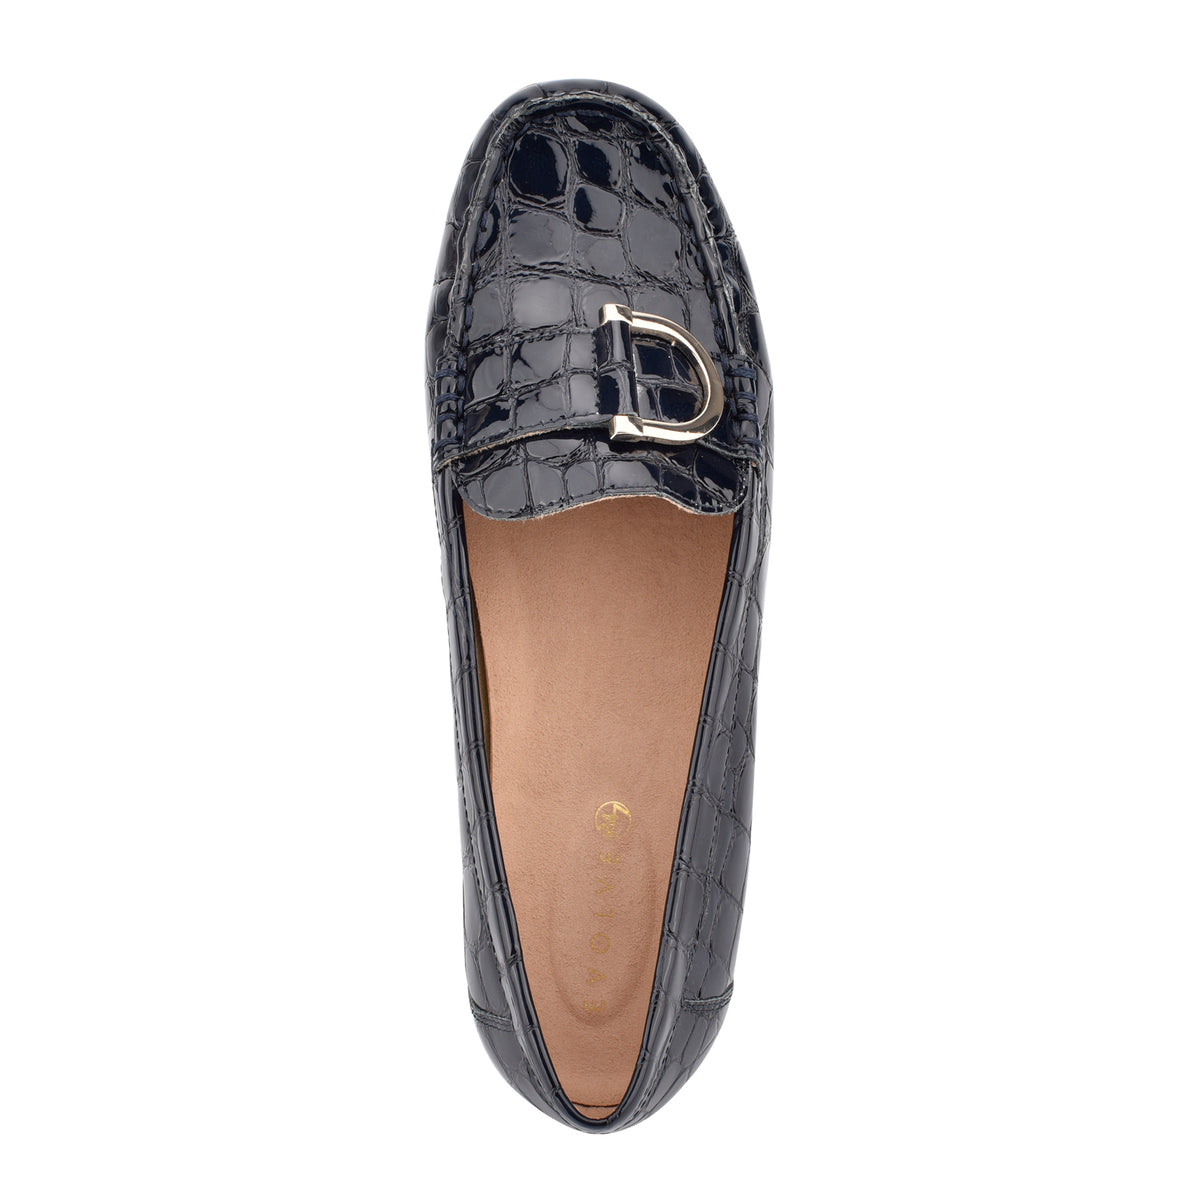 mink-flat-slip-on-loafer-in-navy-croco-embossed-patent